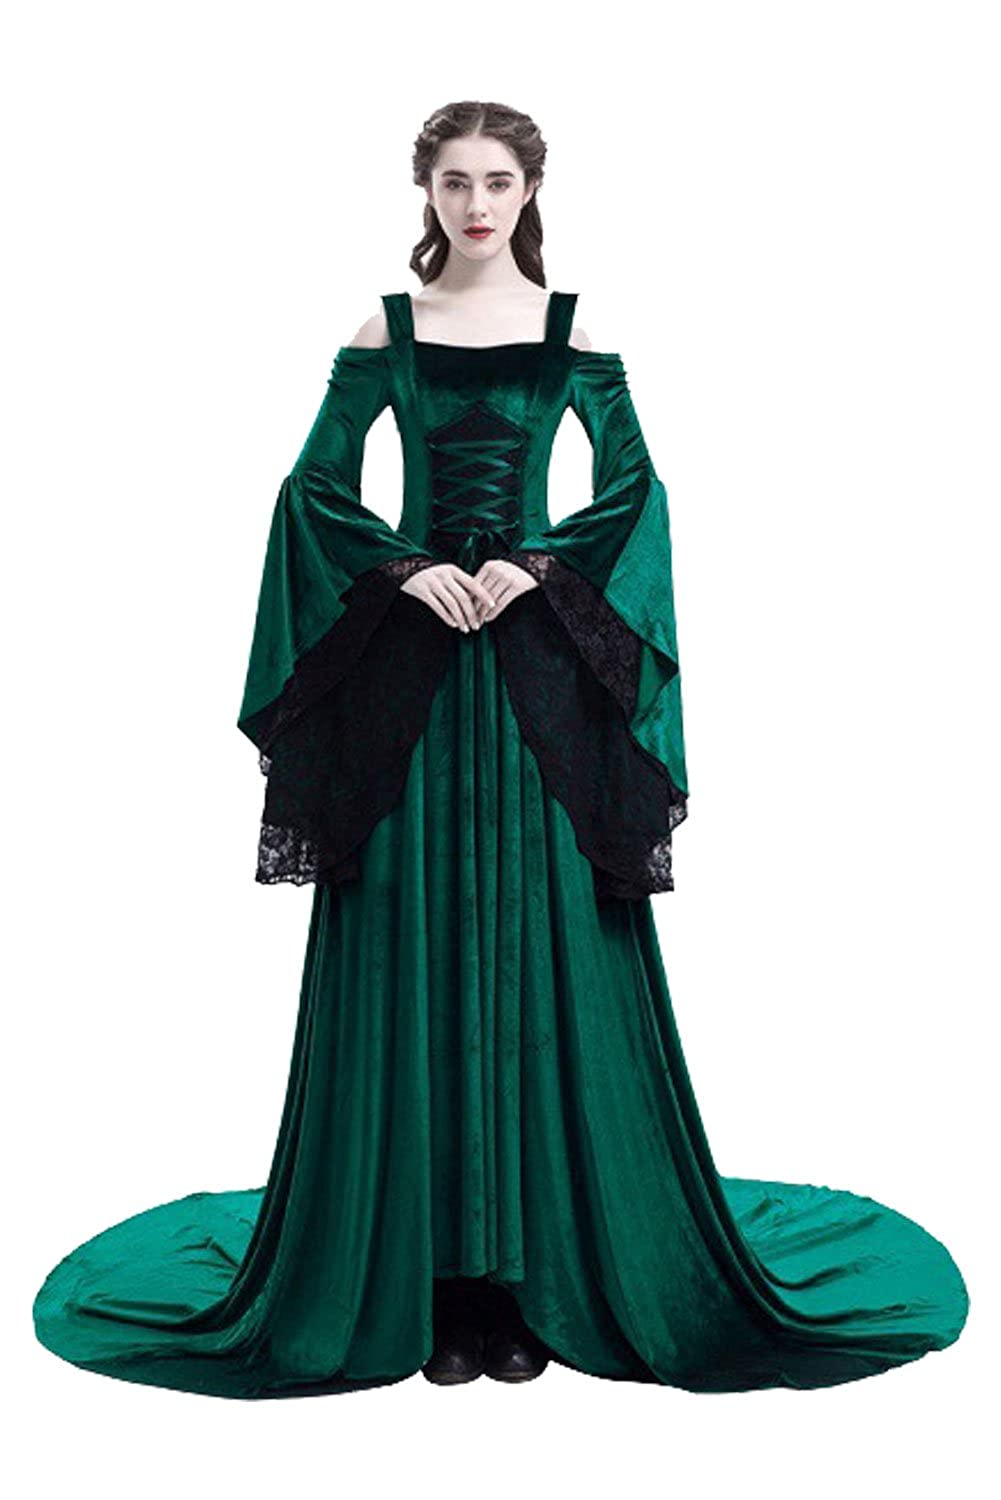 Amazon.com: baycon Womens Renaissance Costumes Medieval Irish Dress Victorian Retro Gown Cosplay: Clothing